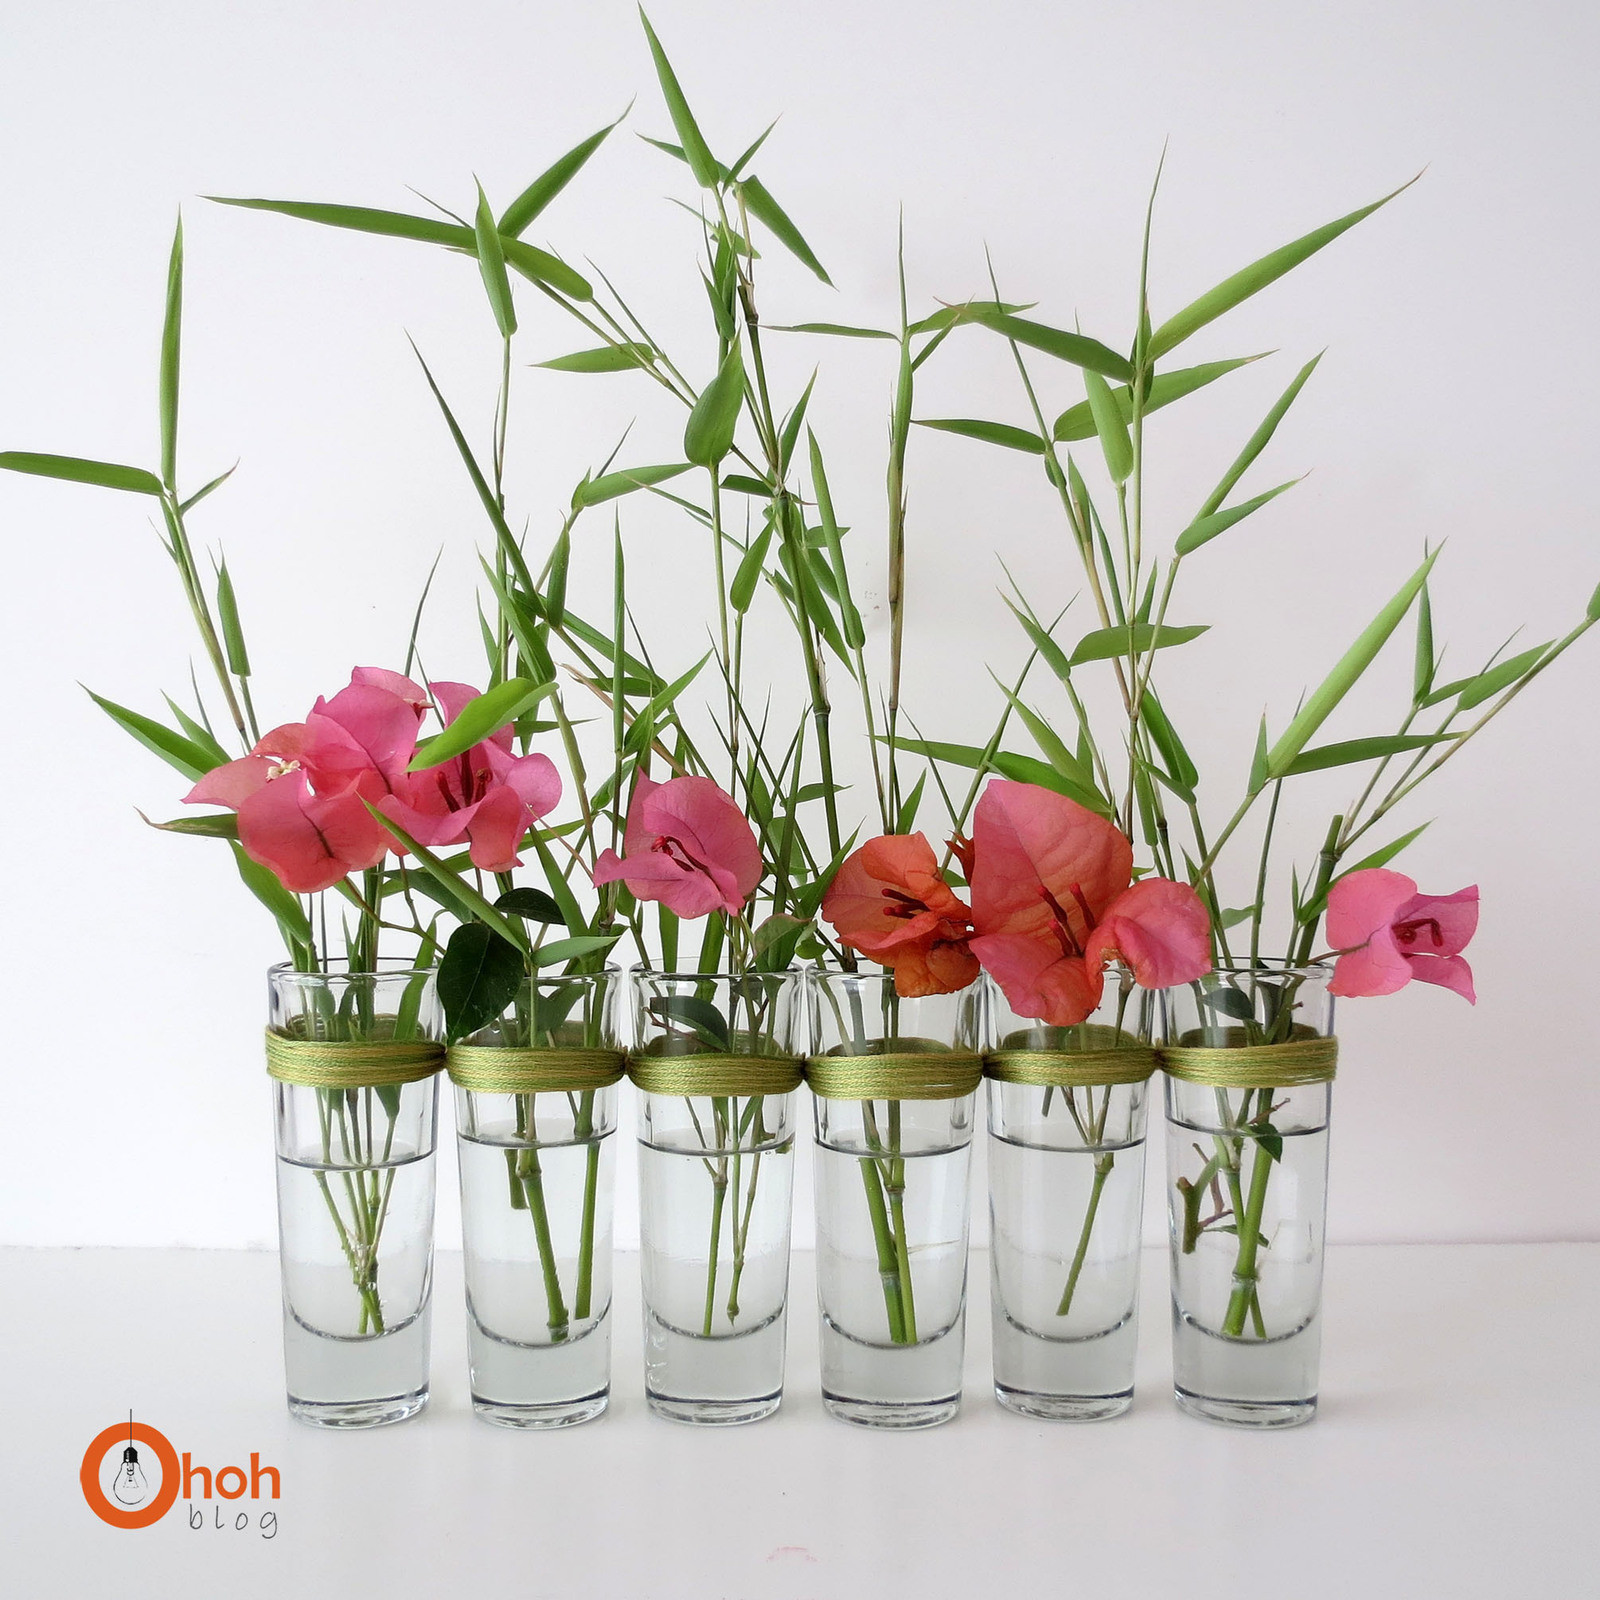 lucky bamboo vase of flower vase decoration ping flowers healthy with regard to here is an easy idea to display flowers free tutorial with pictures on how diy vase how to make a vase home diy on cut out keep how